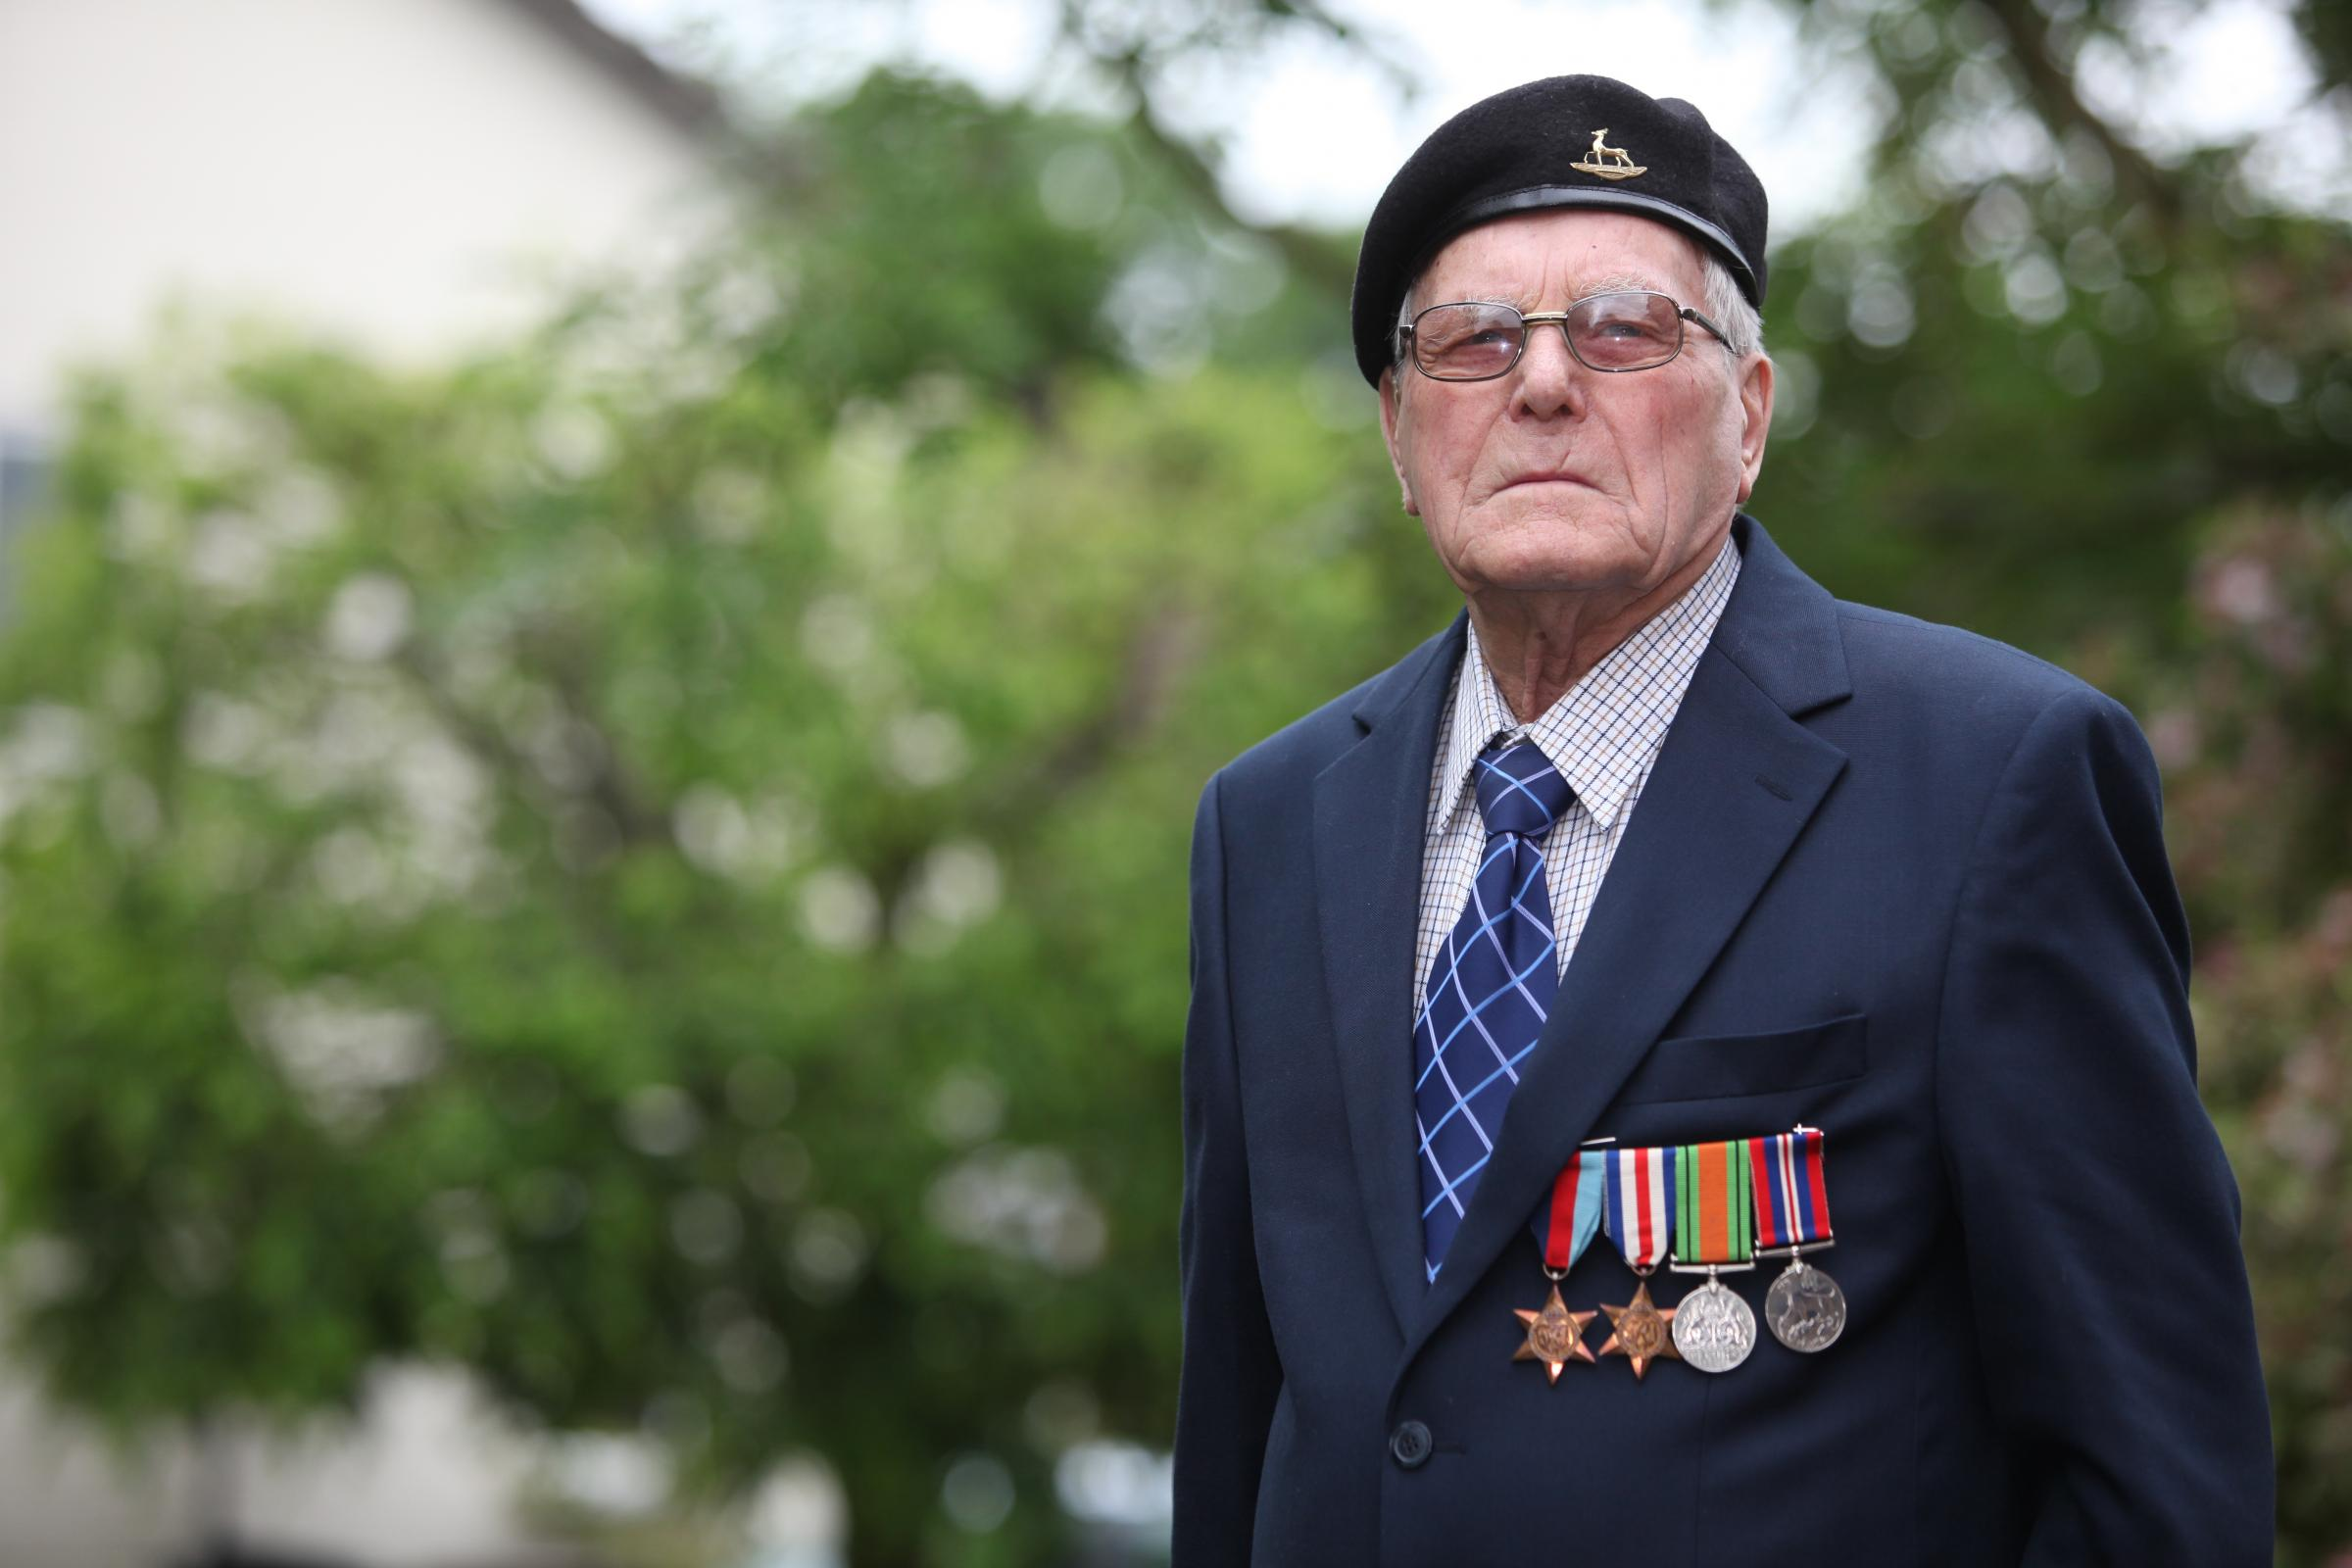 D-Day veterans return to Normandy for 70th anniversary